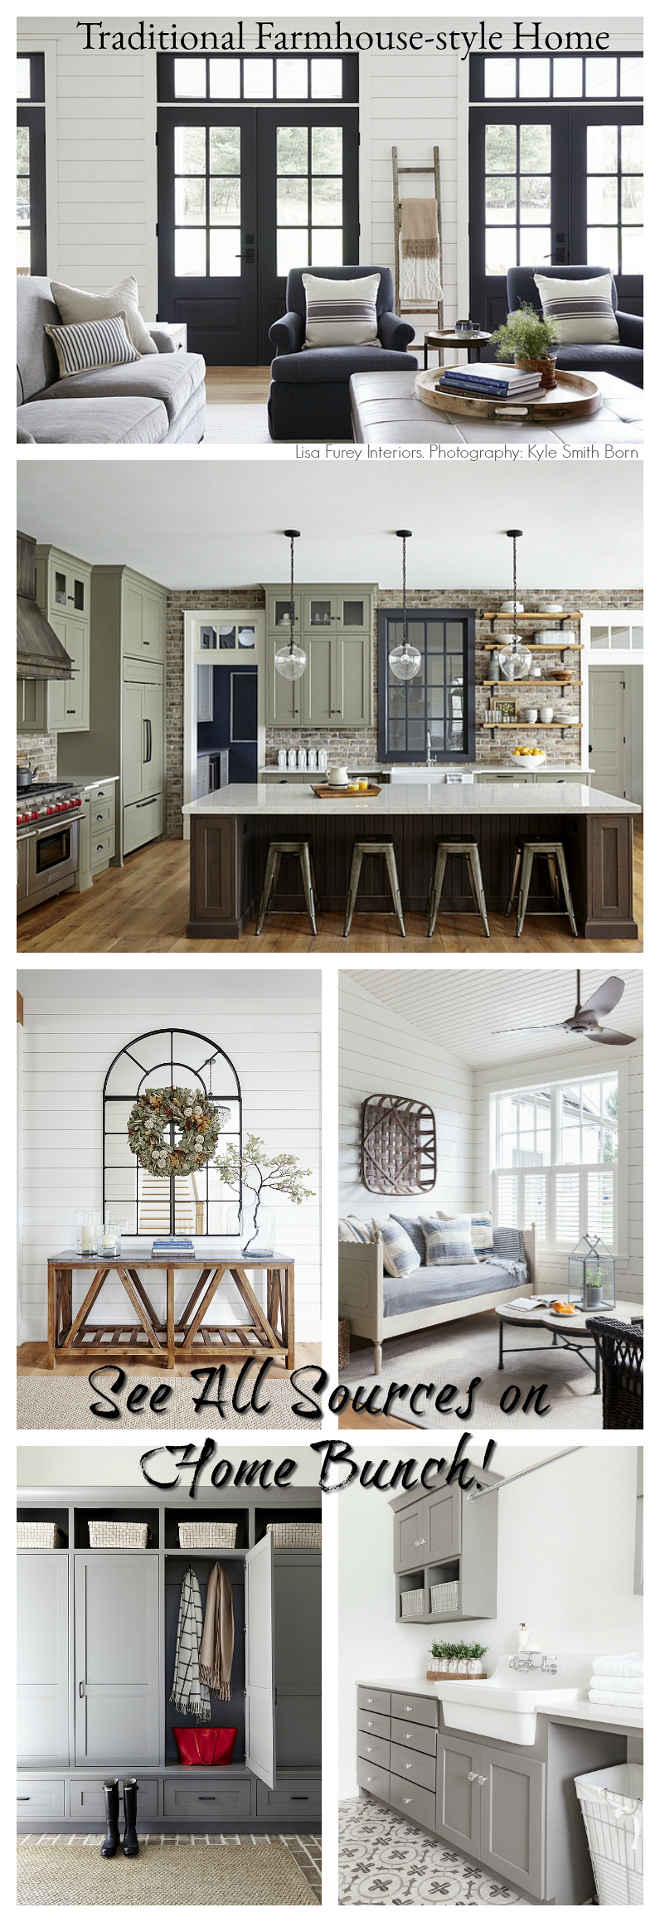 Traditional Farmhouse-style Home Design Ideas